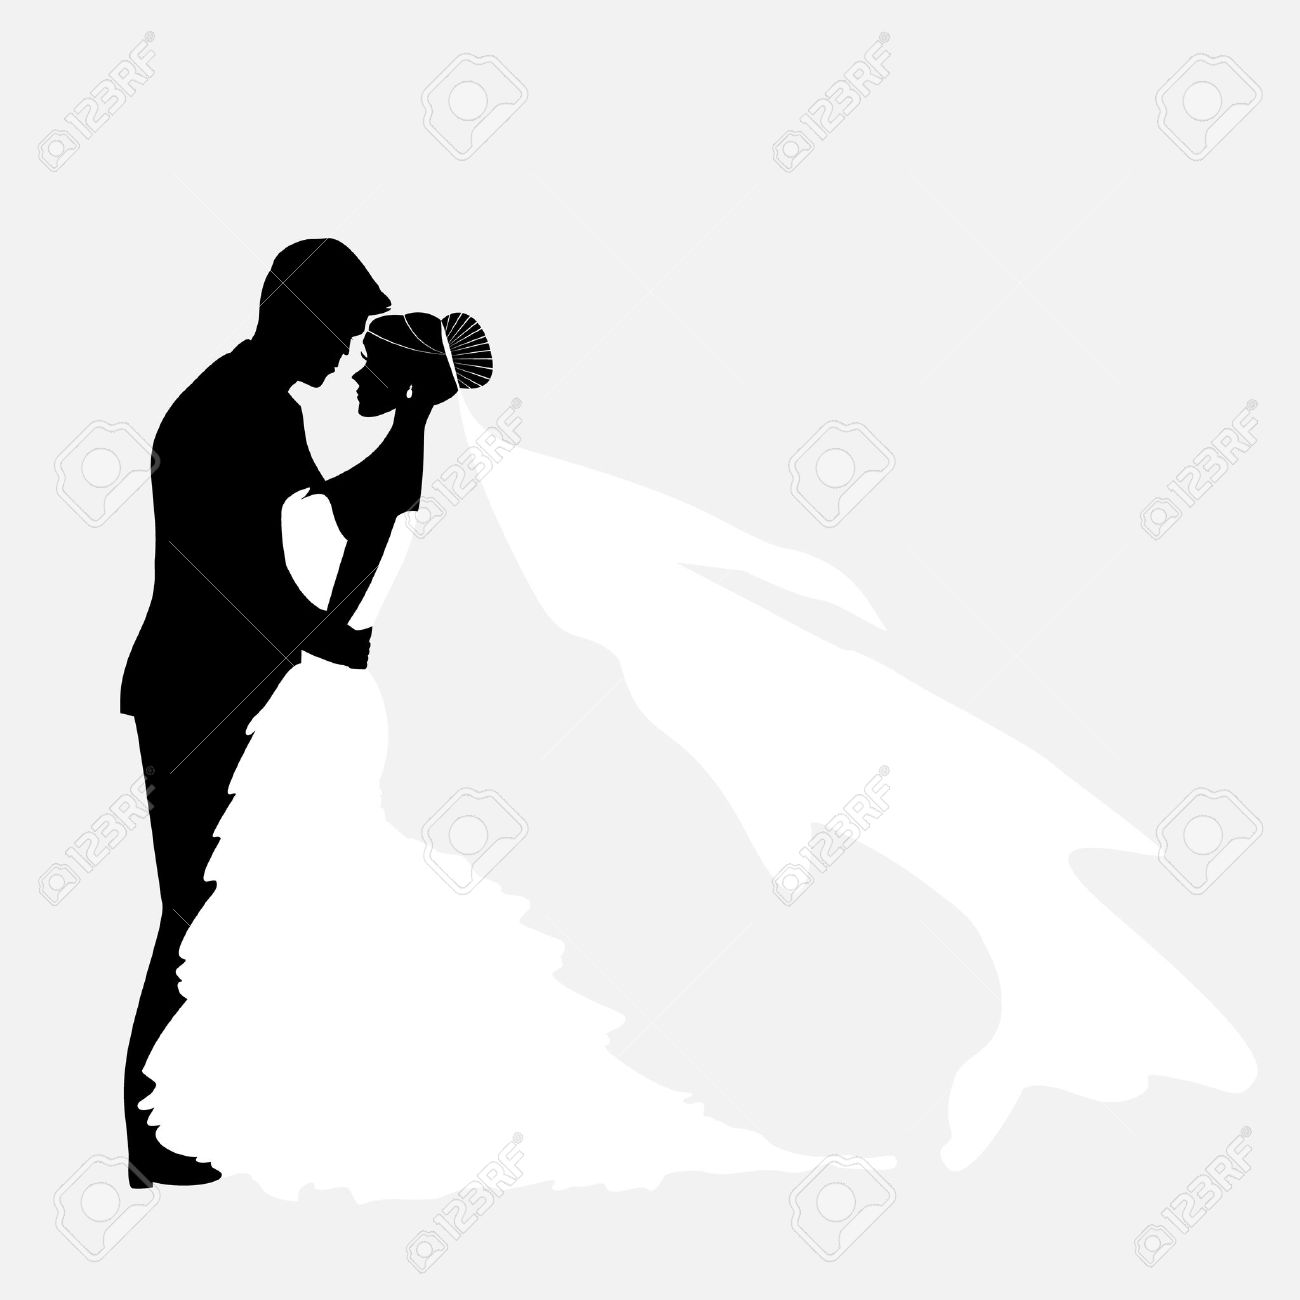 Bride and groom vector couples silhouette for wedding invitation vector couples silhouette for wedding invitation stock vector 45724176 biocorpaavc Image collections